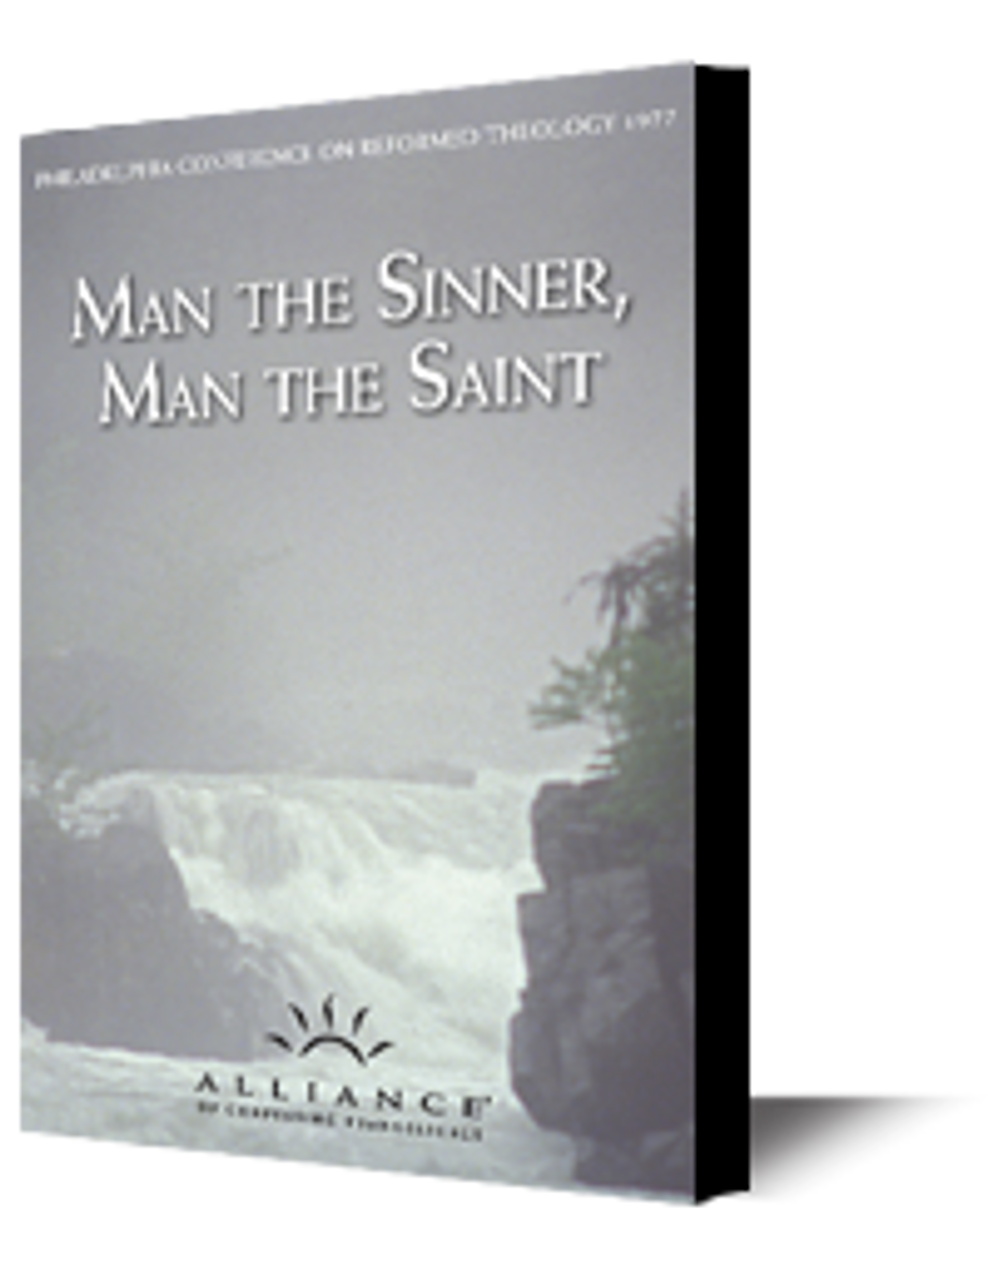 Man the Sinner, Man the Saint PCRT 1977 (mp3 Disc)